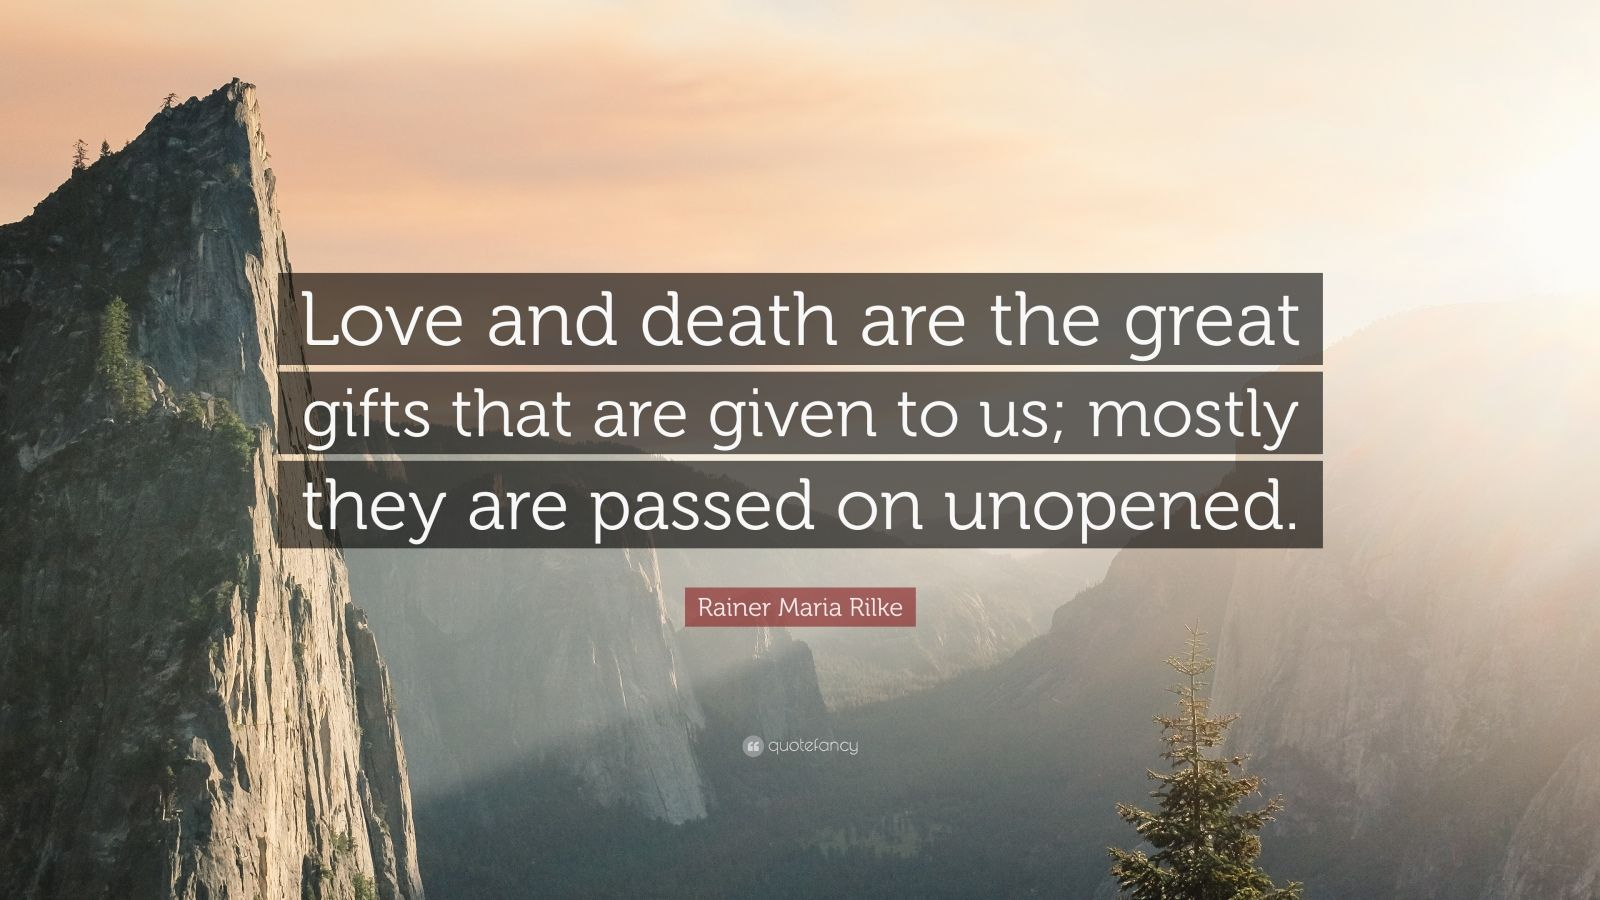 Quotes About Love And Death Quotes About Love And Death  Dobre For